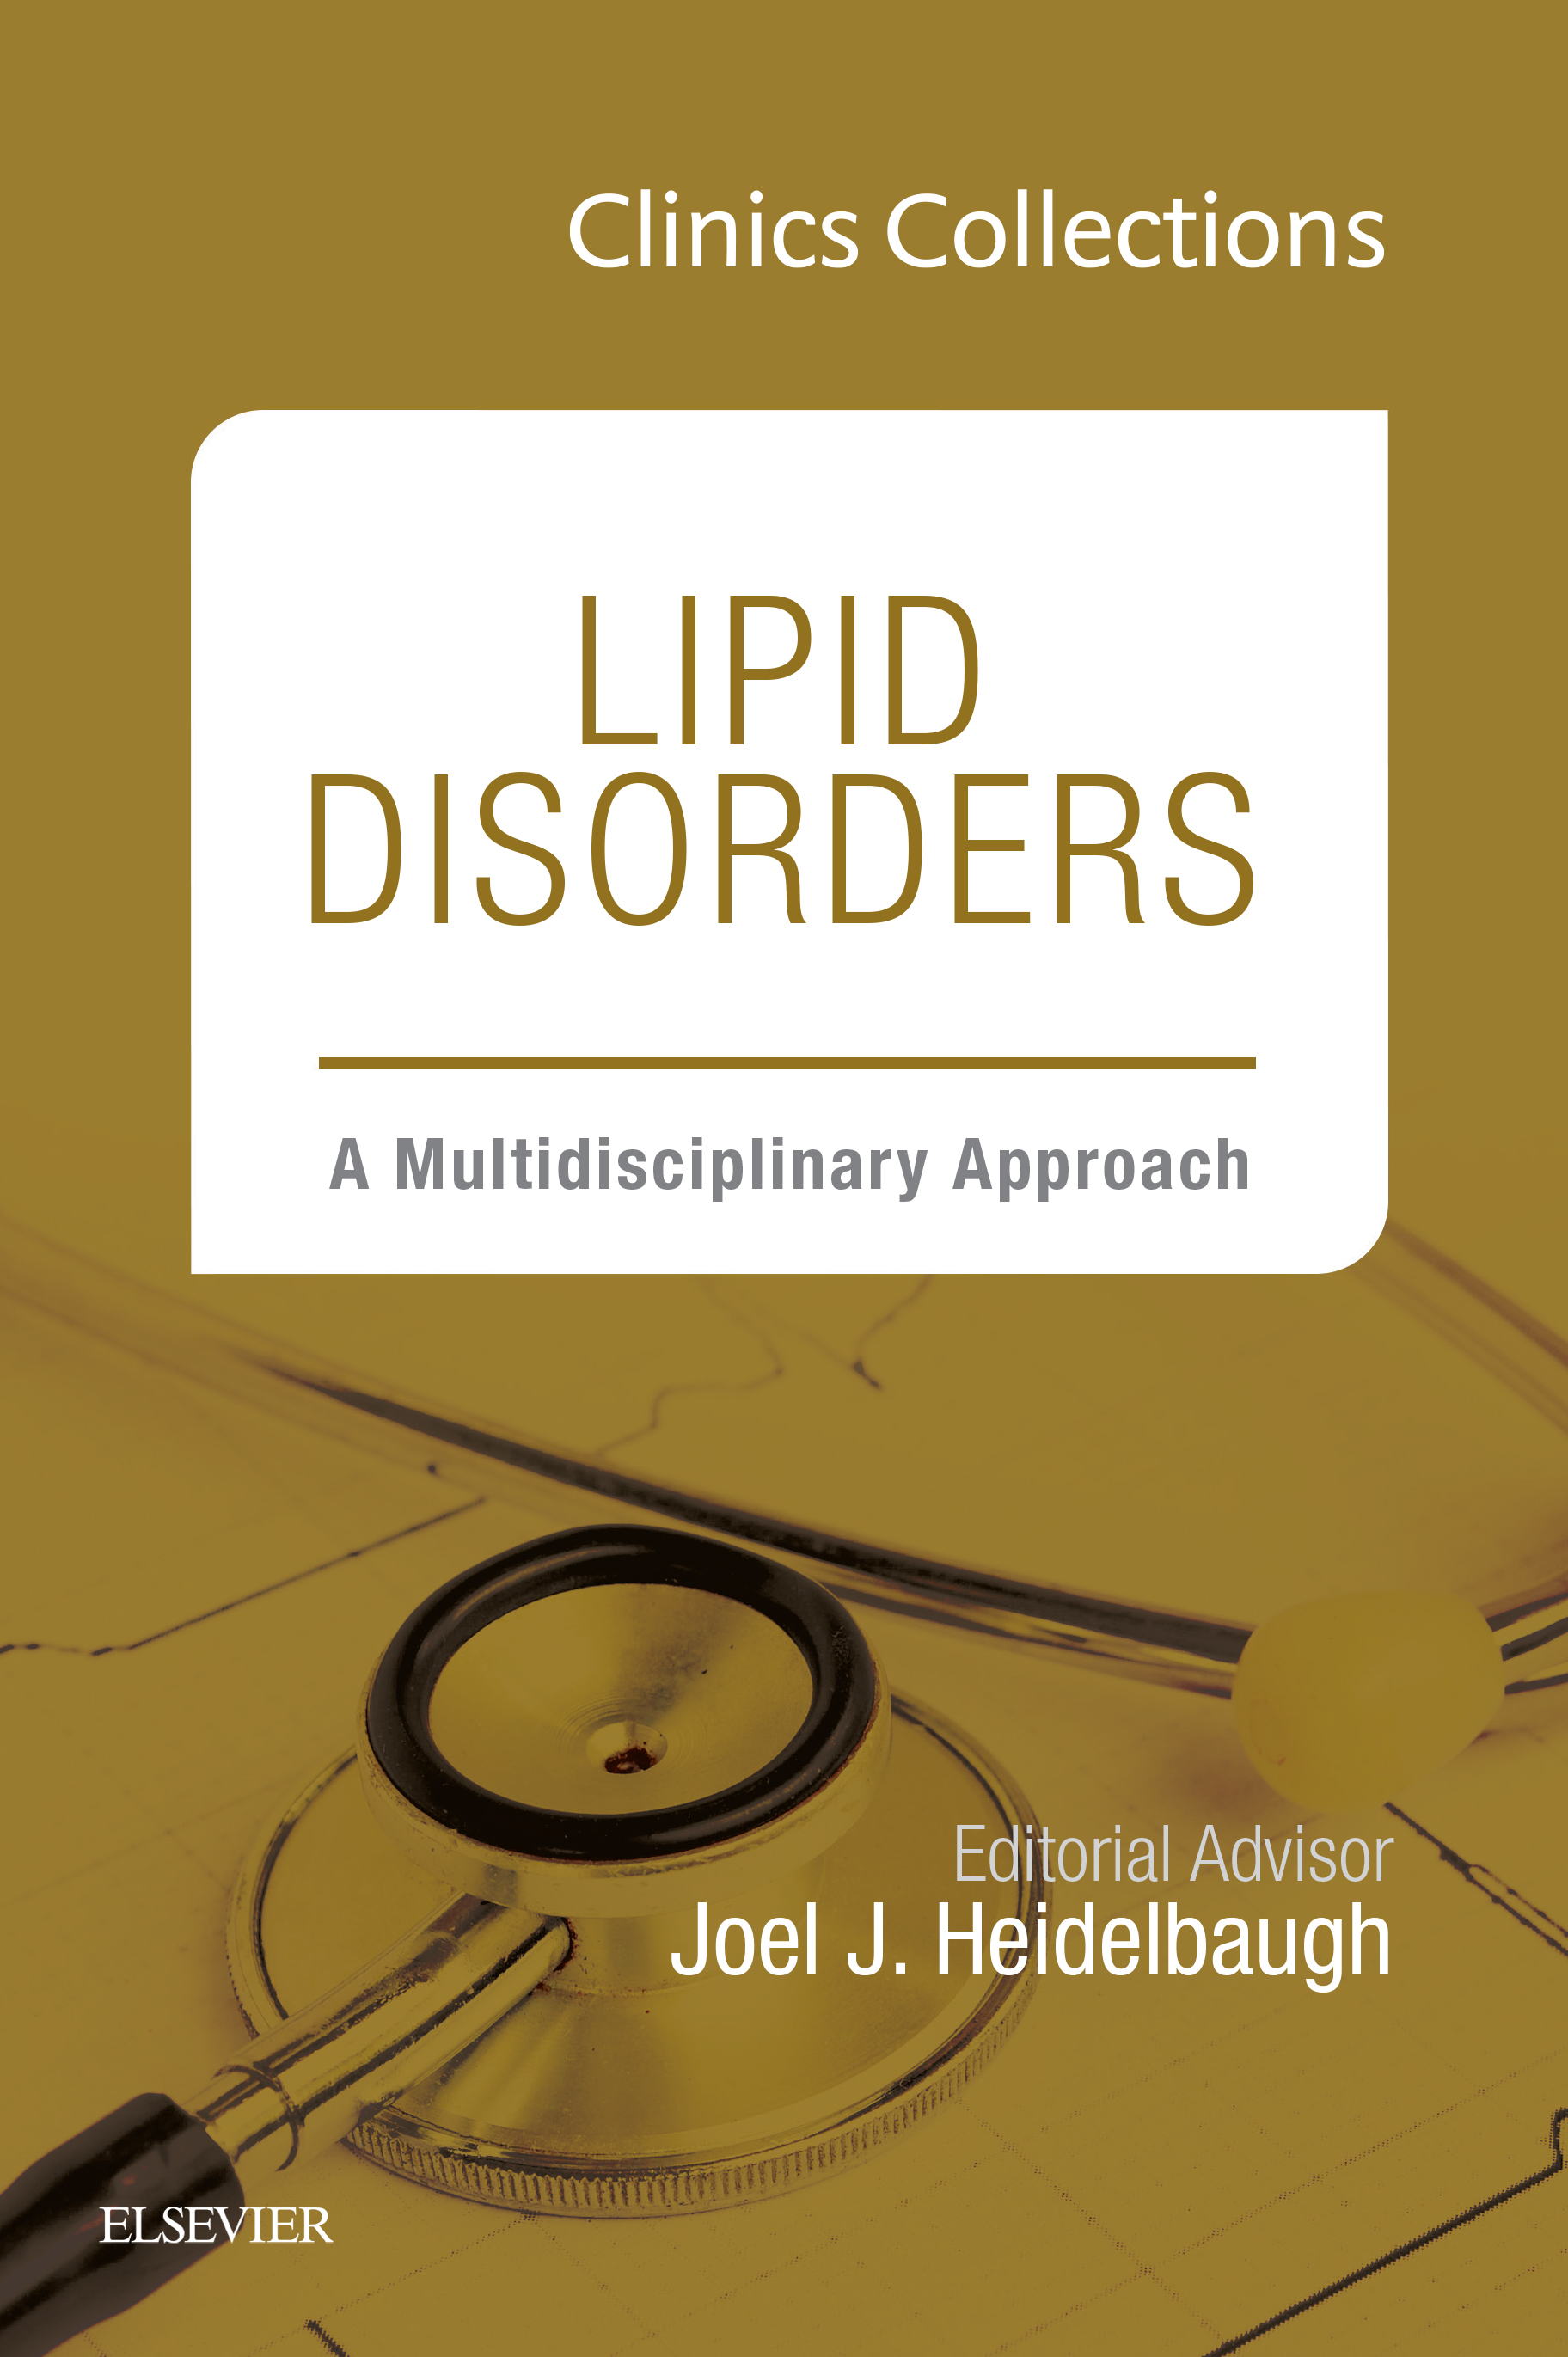 Lipid Disorders: A Multidisciplinary Approach